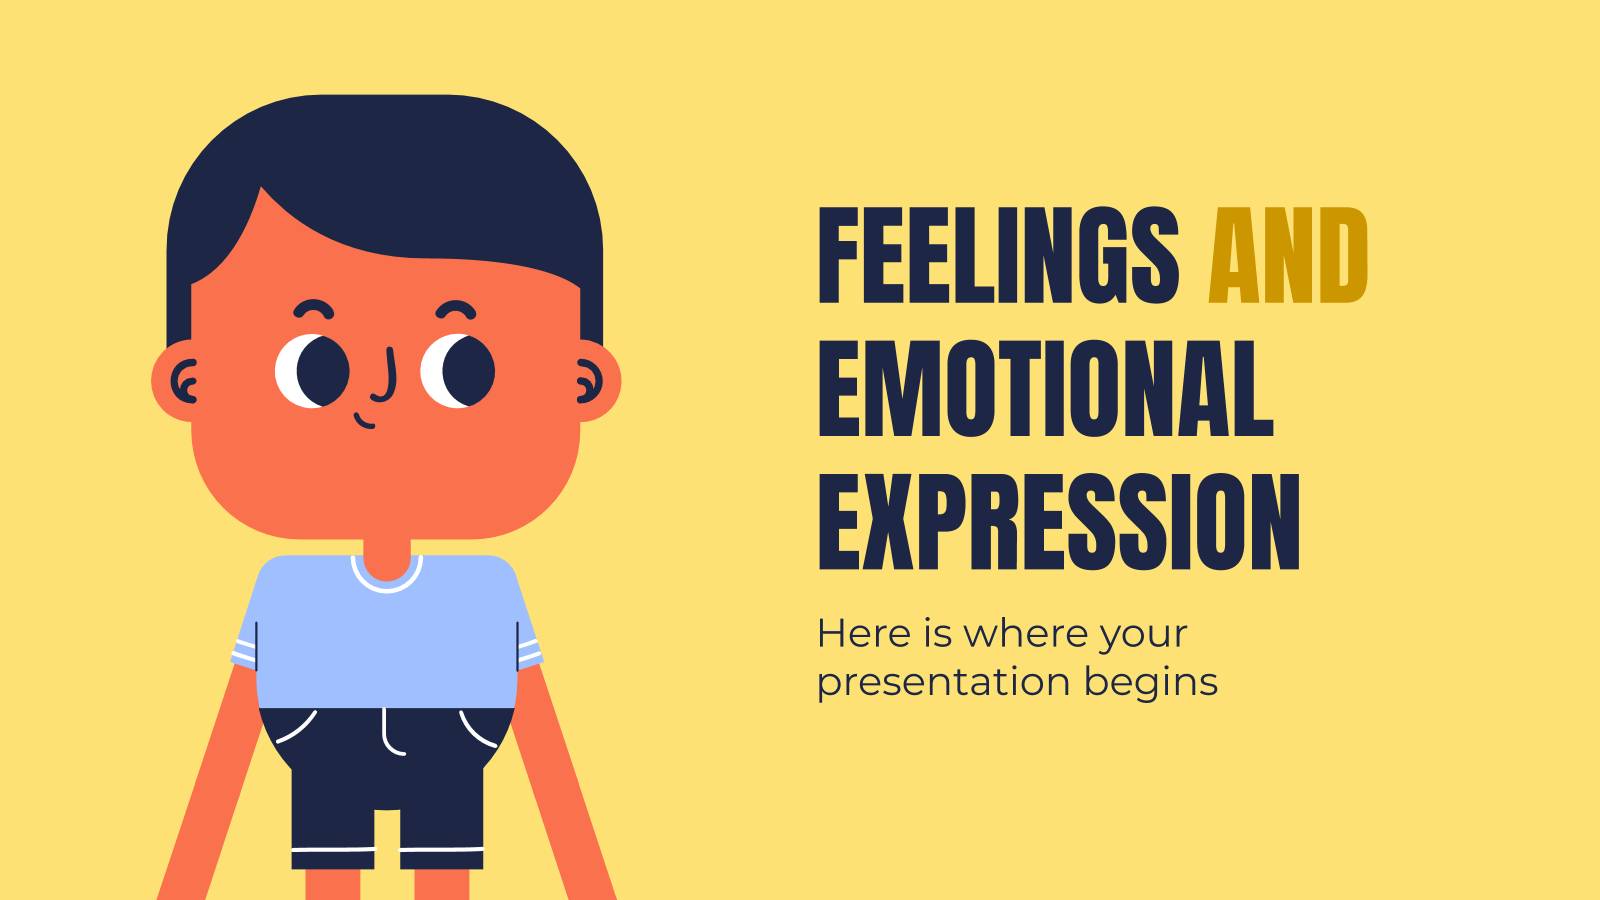 Feelings and Emotional Expression presentation template